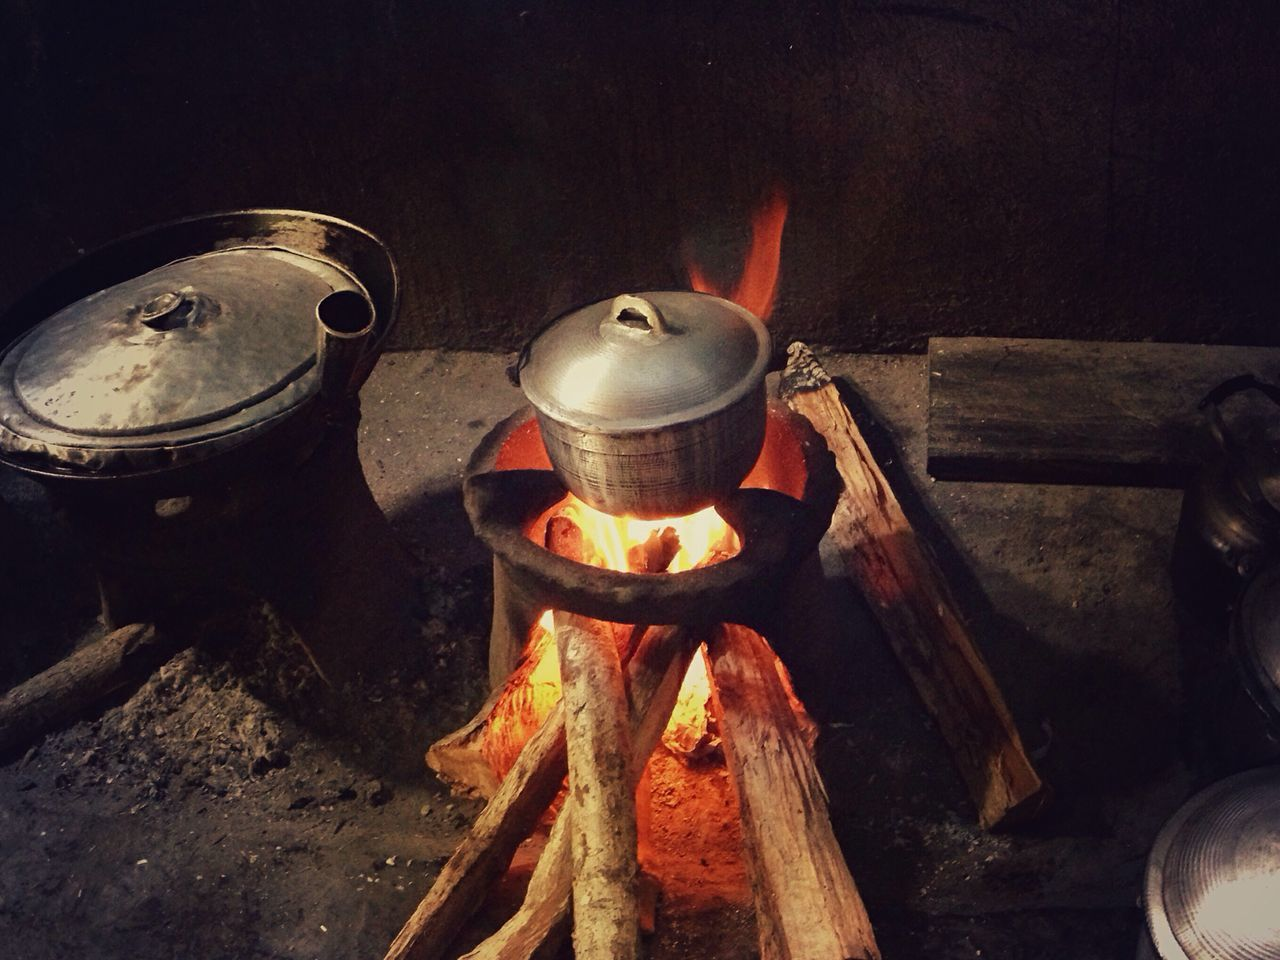 typical local Filipino kitchen Wood Dirty Kitchen Iron Casserole Burning Wood Fire Cooking Rice Kitchen Utensils life in the province Simple Living Simple Moment Lunch Time! Snapseed IPhone Photography